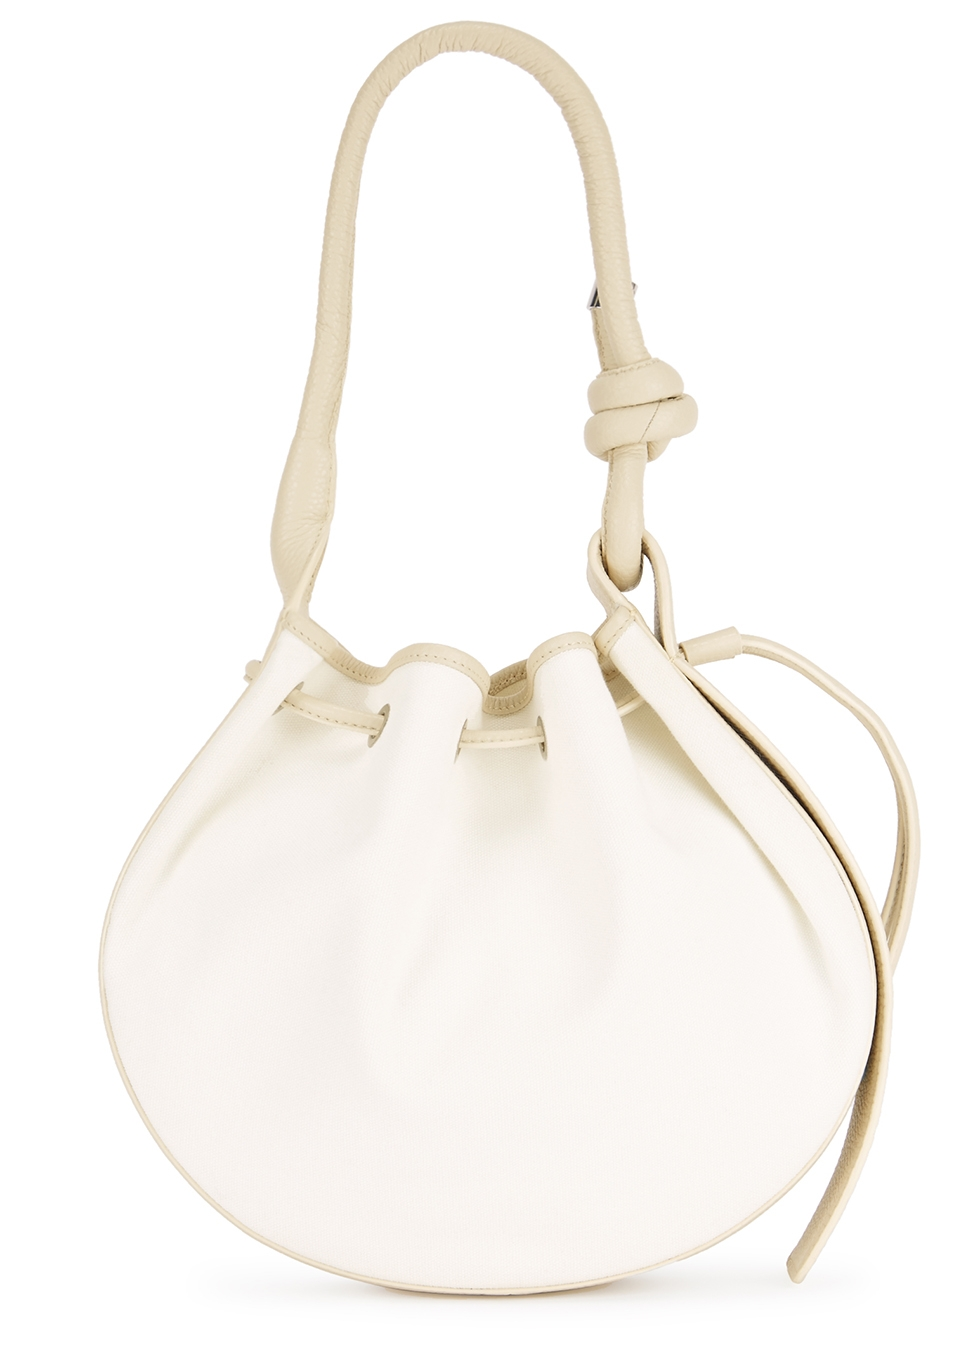 Ina canvas and leather shoulder bag - Behno